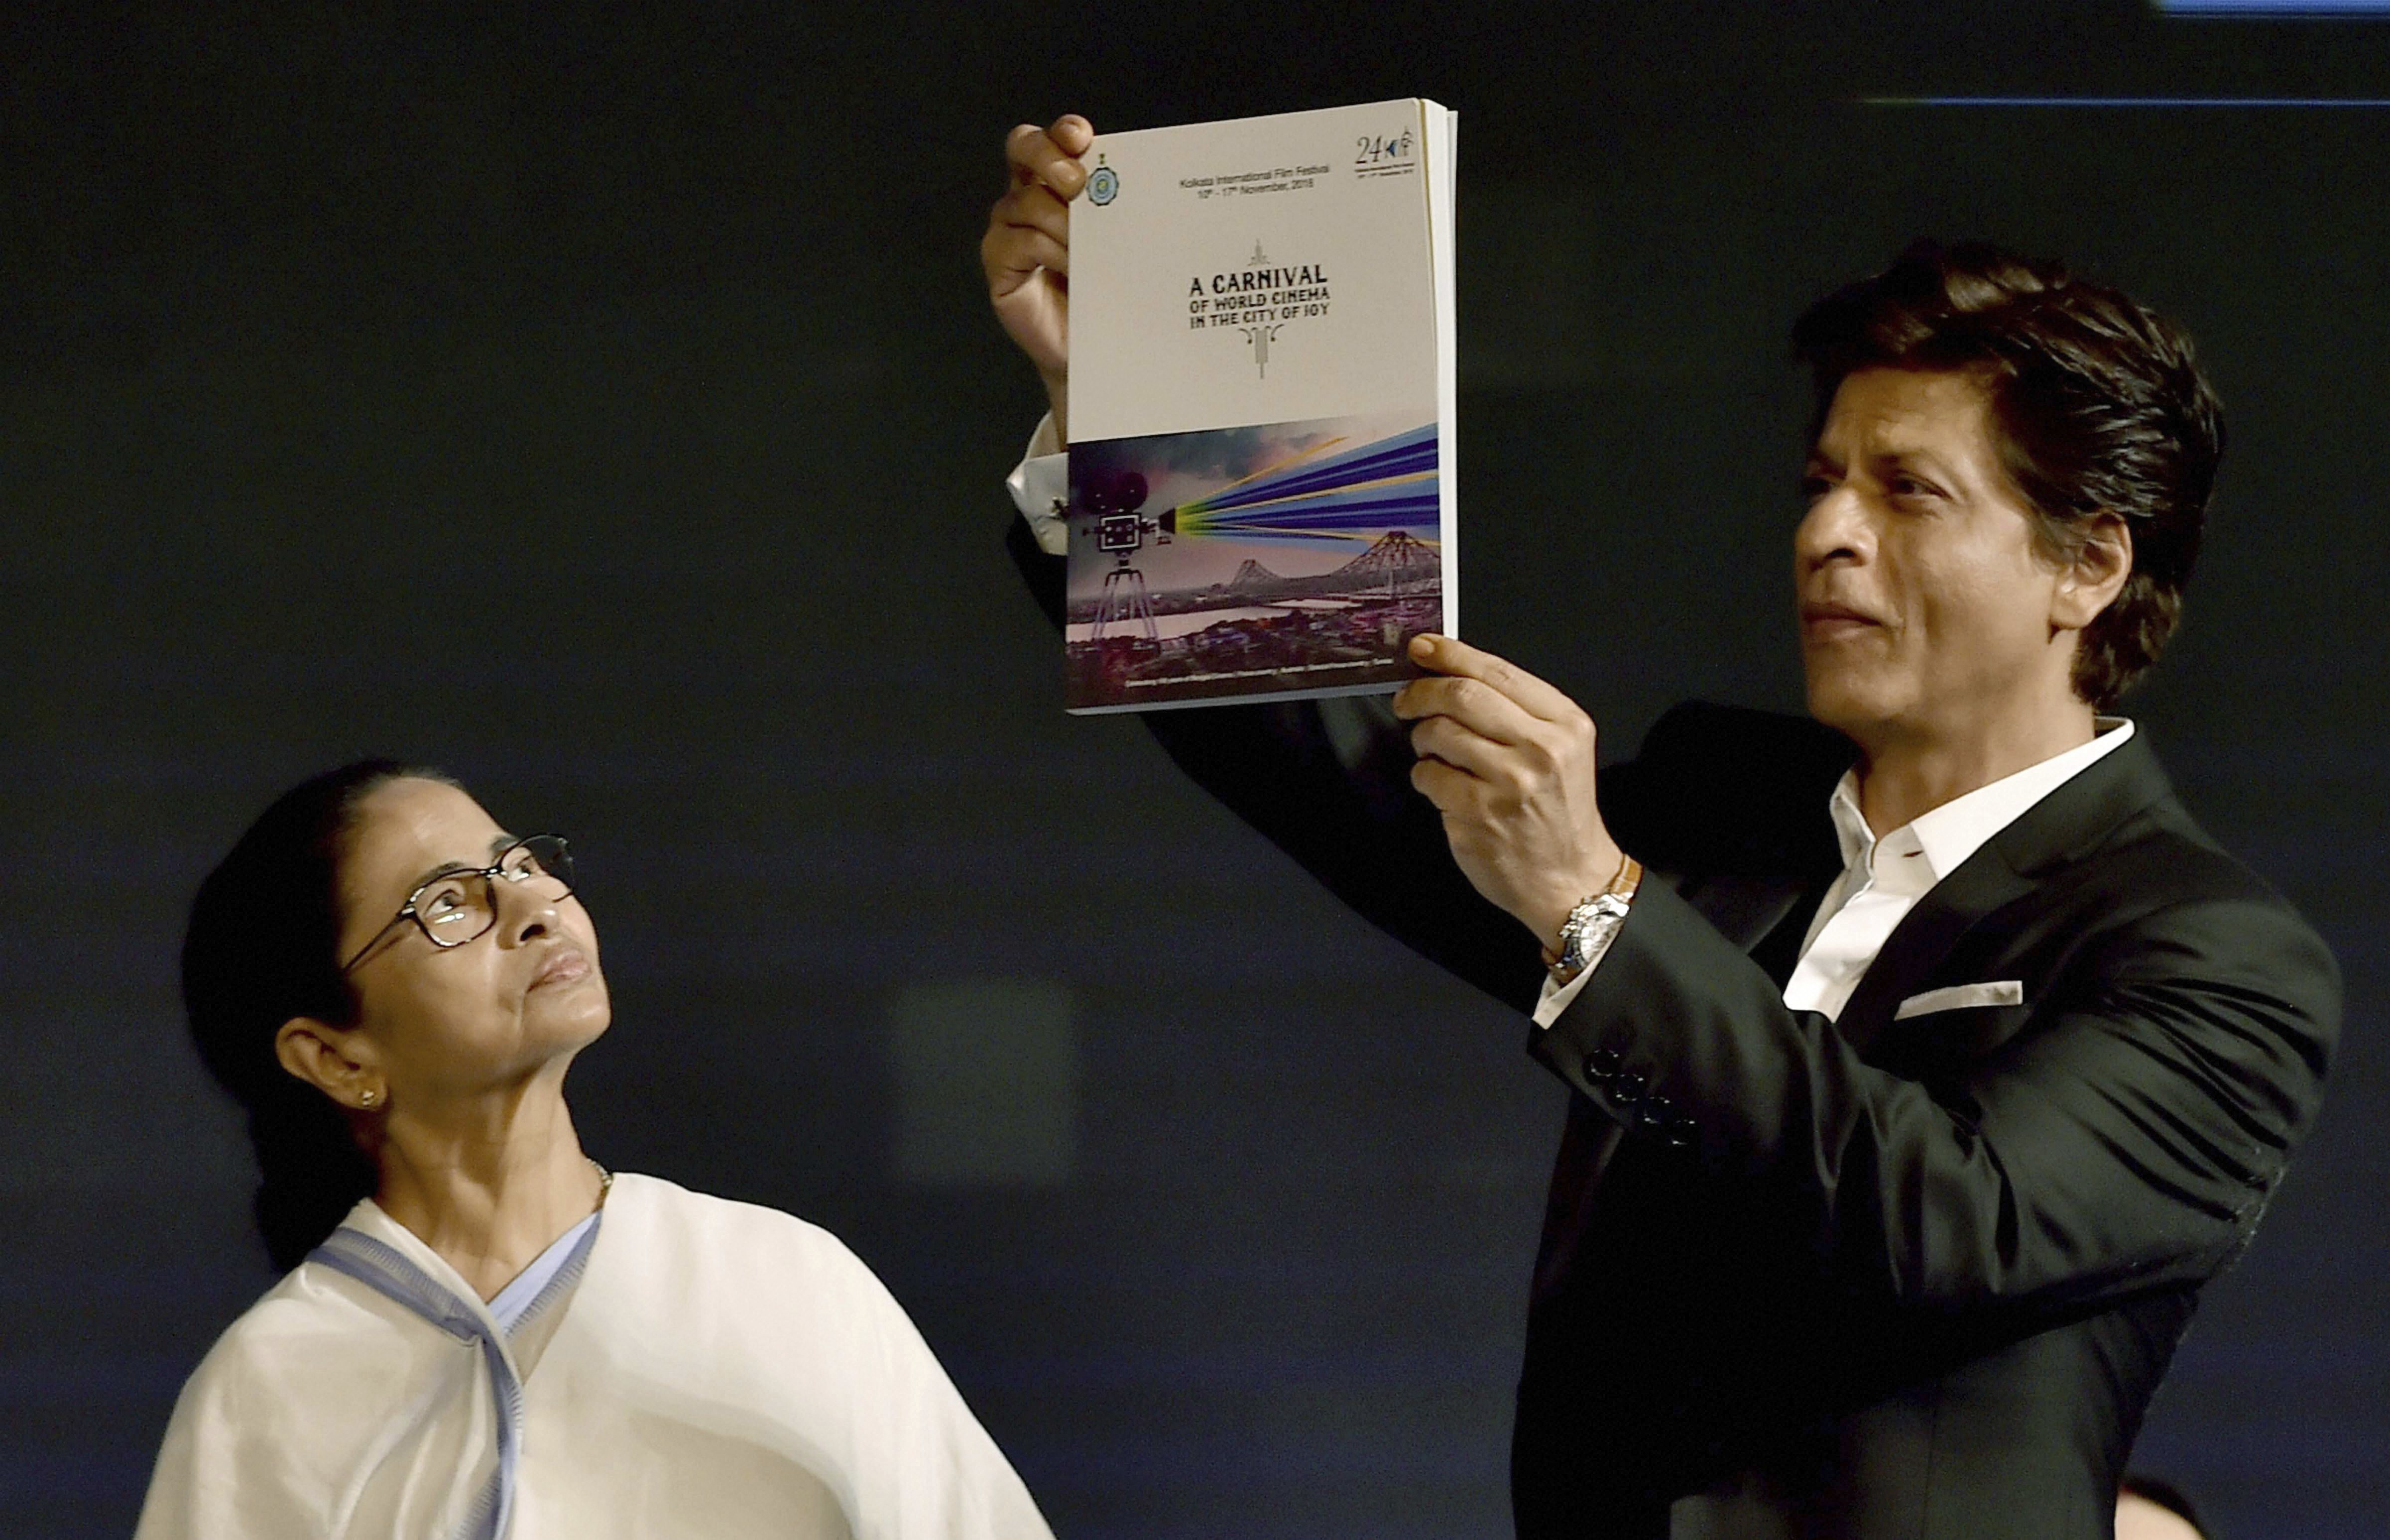 West Bengal Chief Minister Mamata Banerjee looks on as Bollywood actor Shahrukh Khan releases a book during inauguration of '24th Kolkata Intenational Film Festival' in Kolkata - PTI